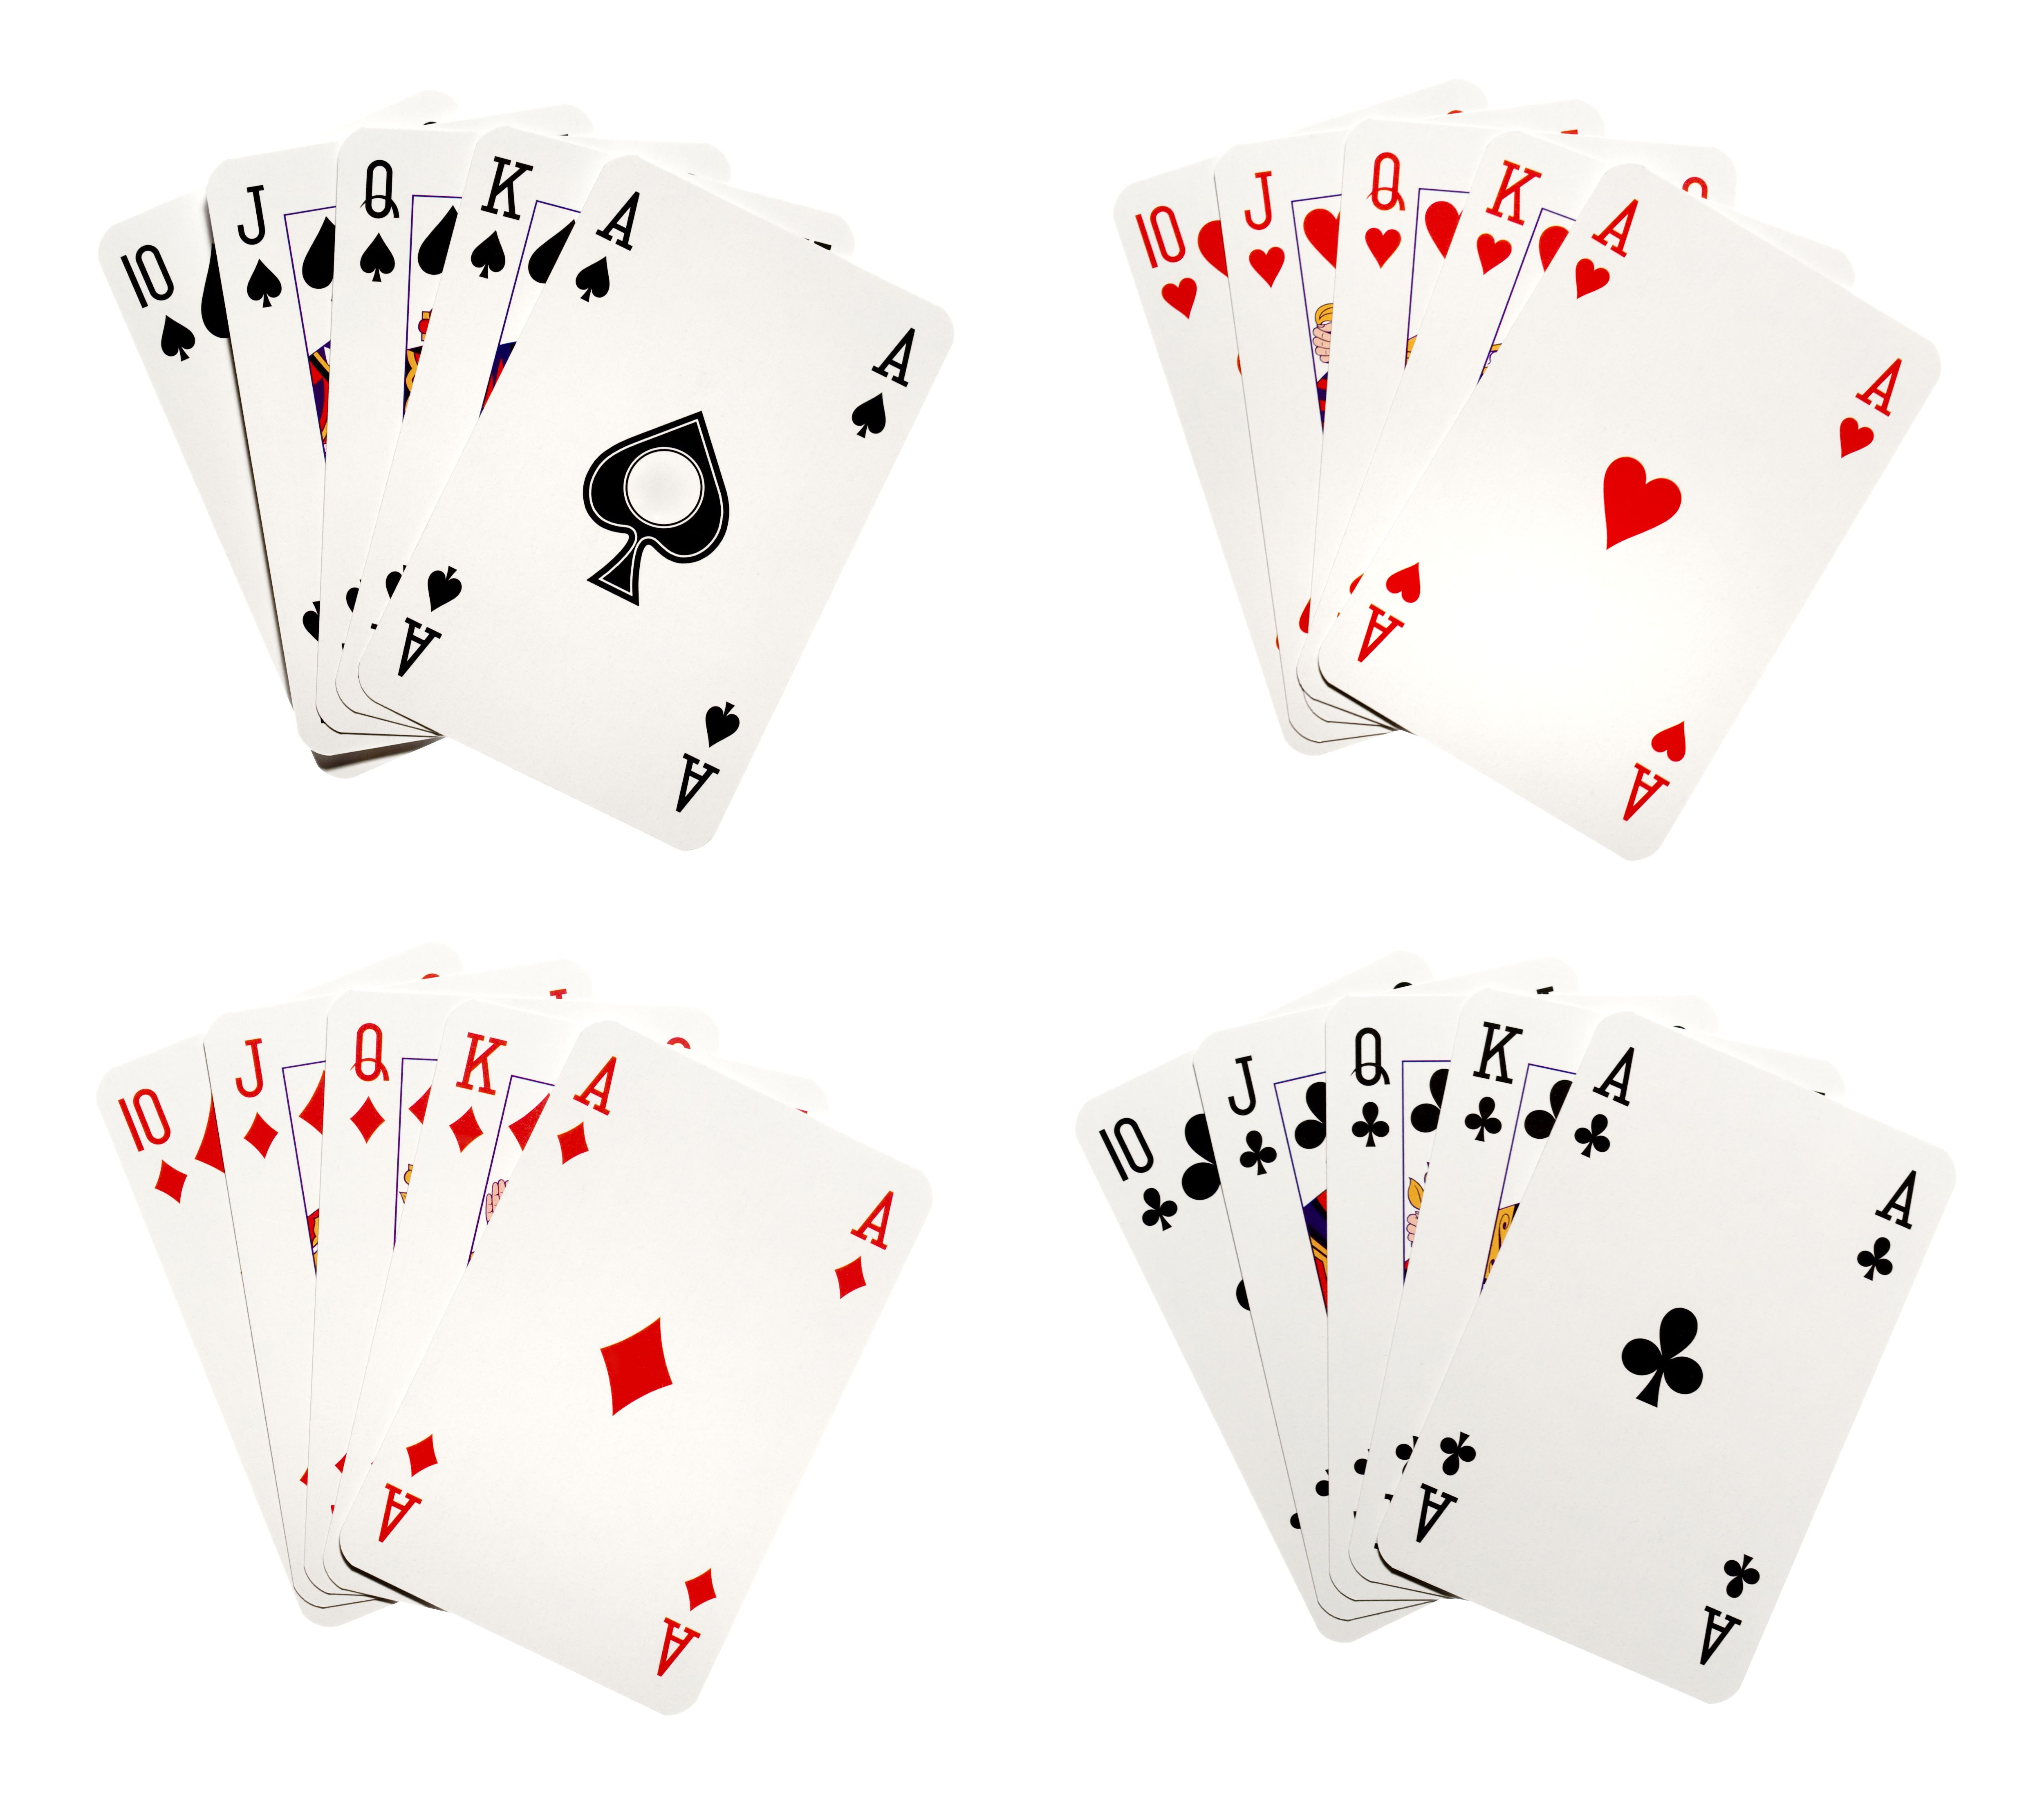 For royal flush hands laid out against white background.